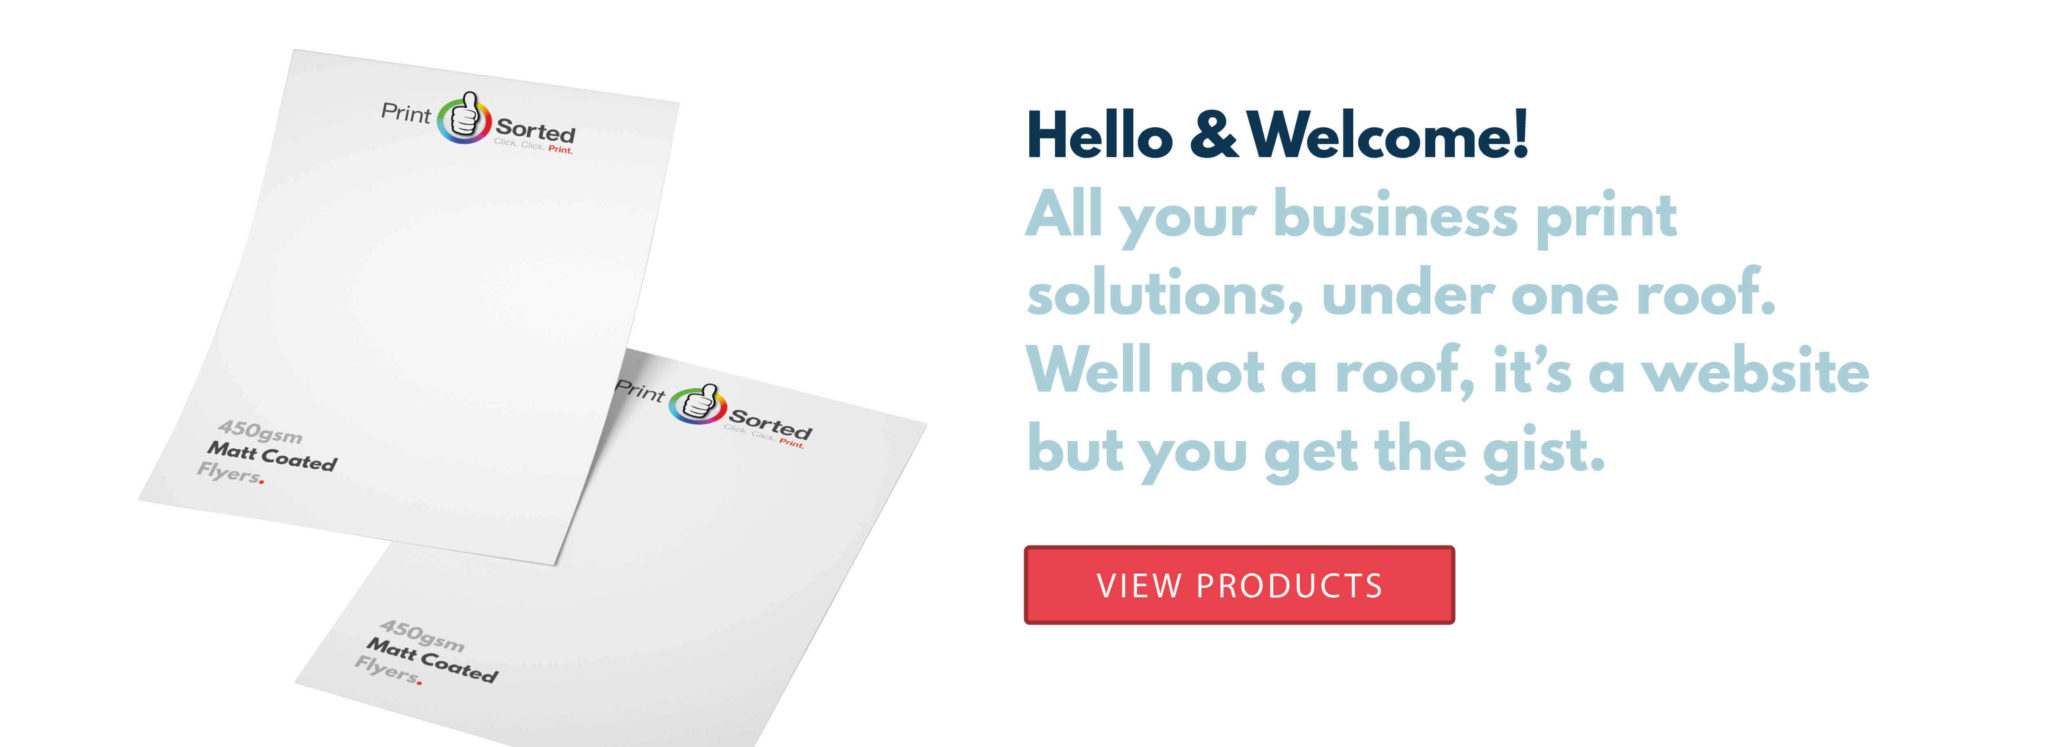 Hello & Welcome to Printsorted slide